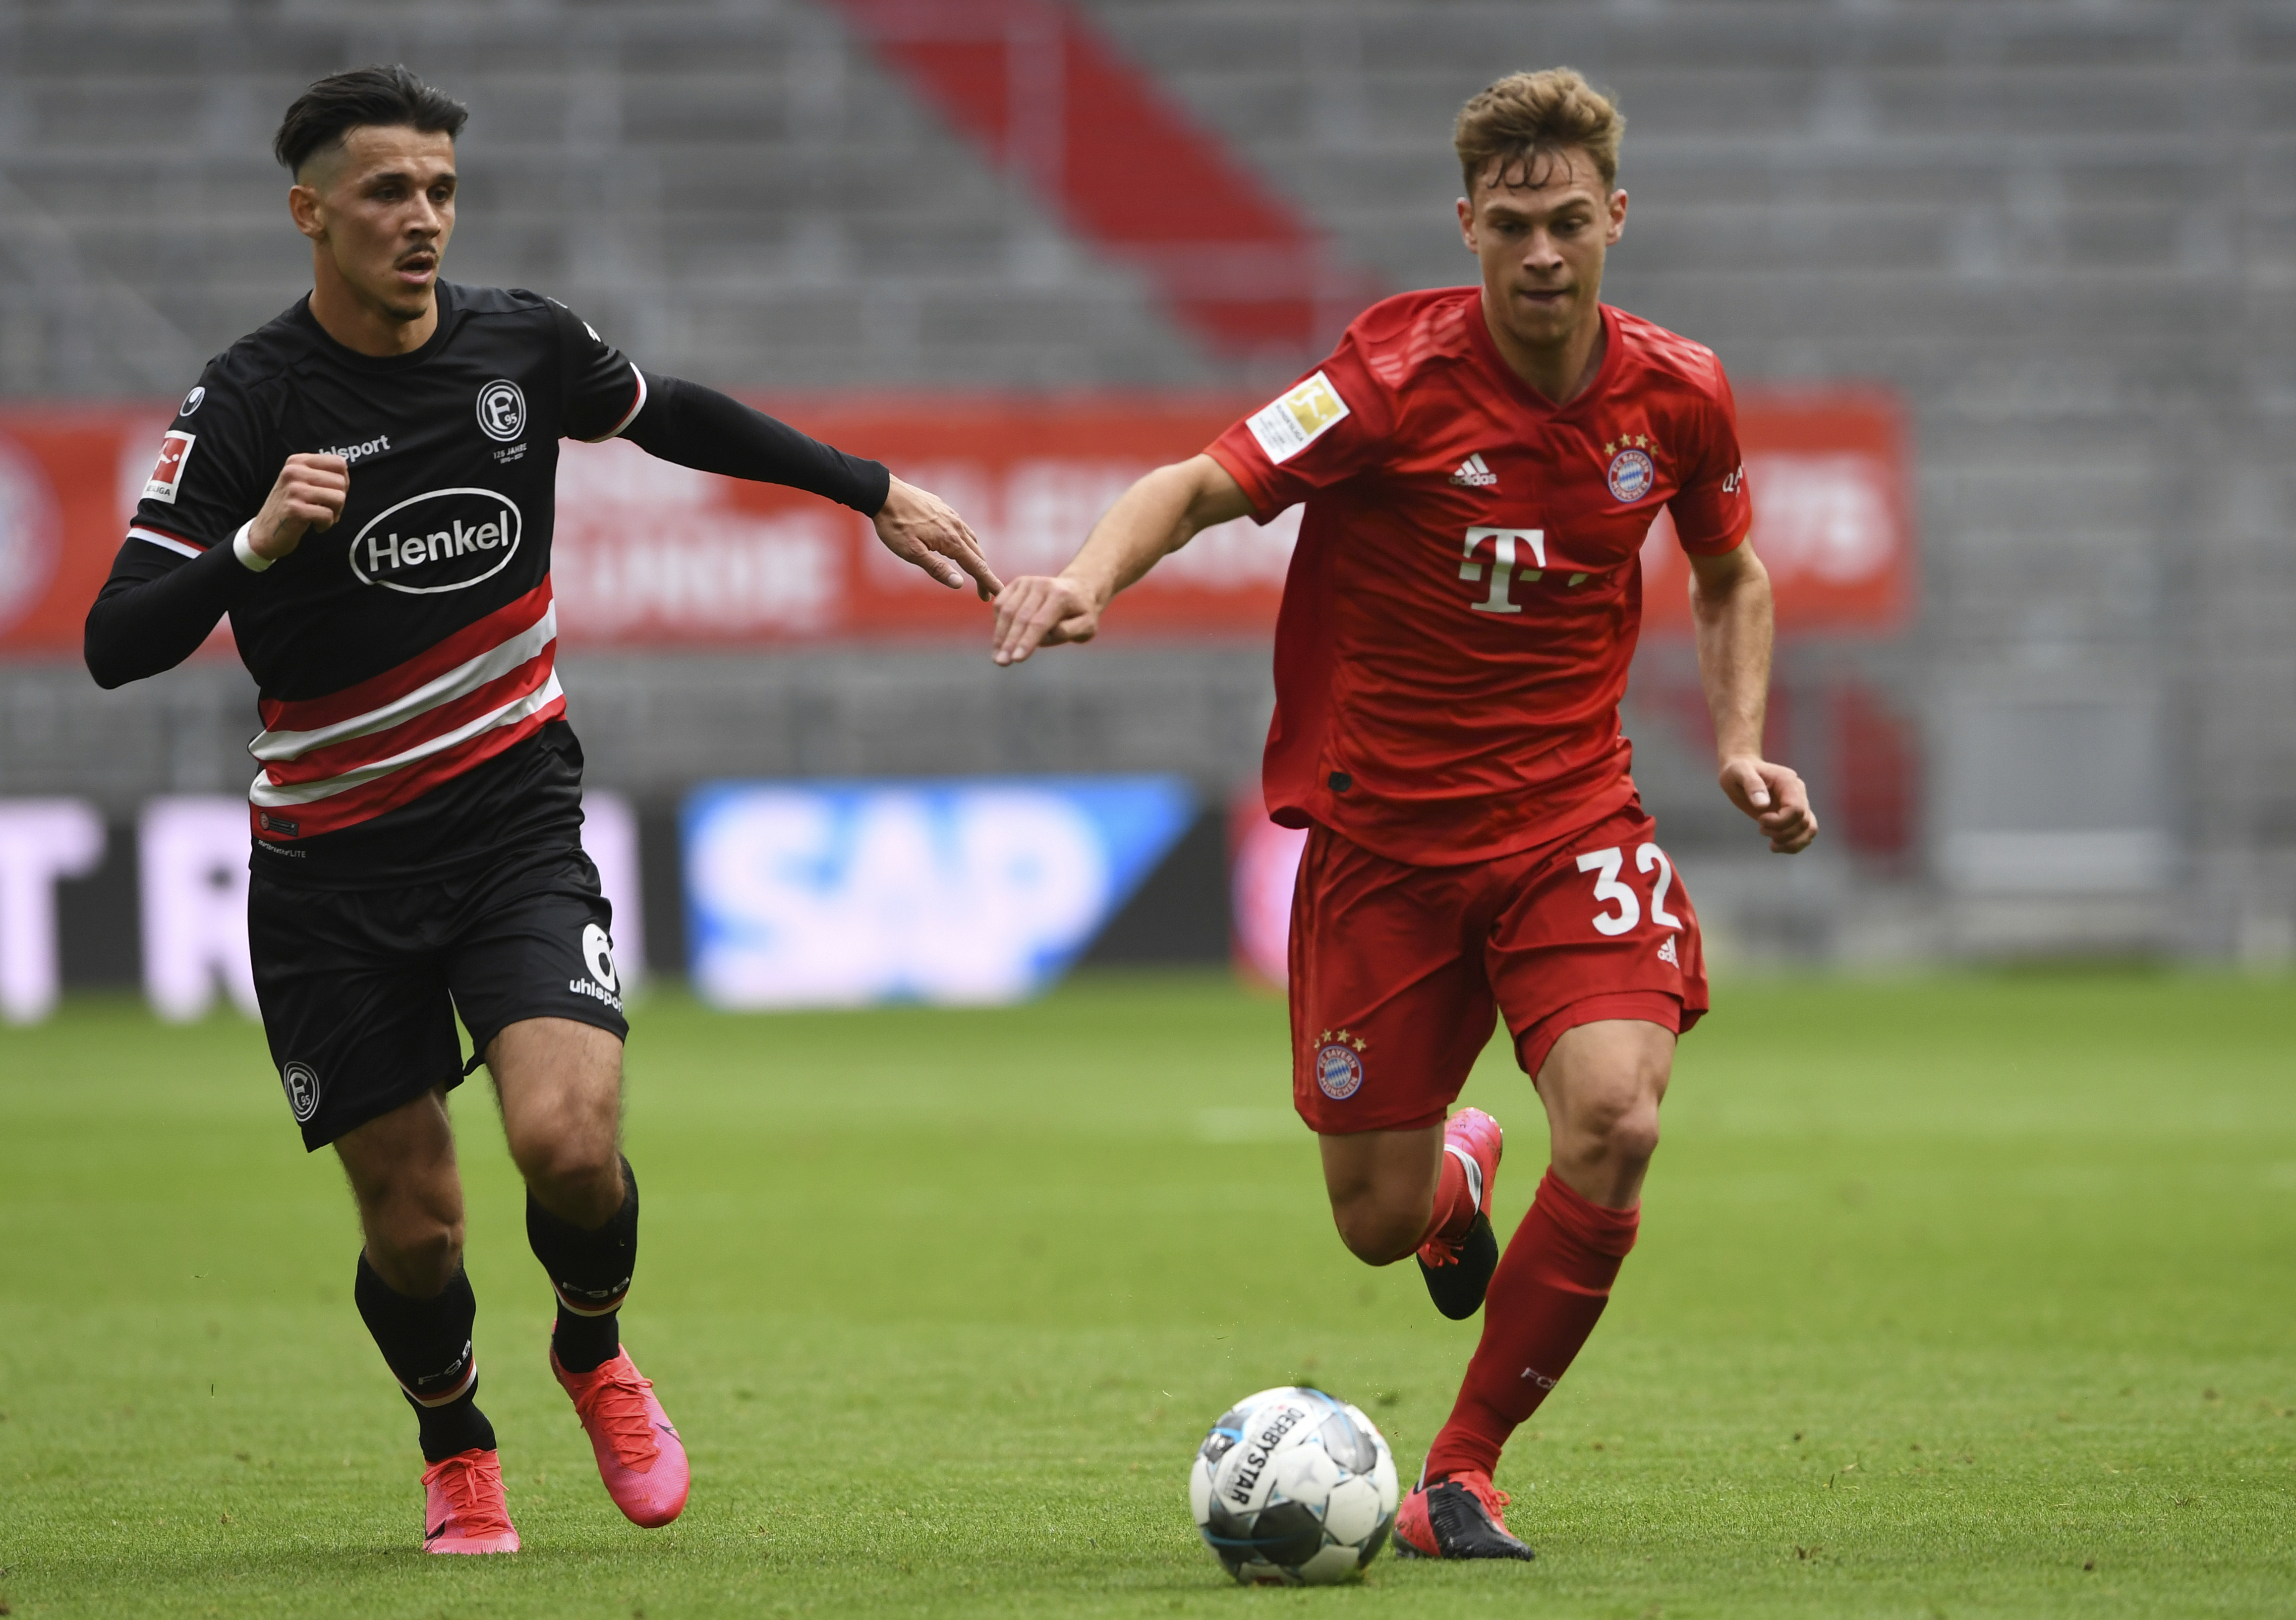 Bayern's Kimmich less emotional but calmer in fan-free games